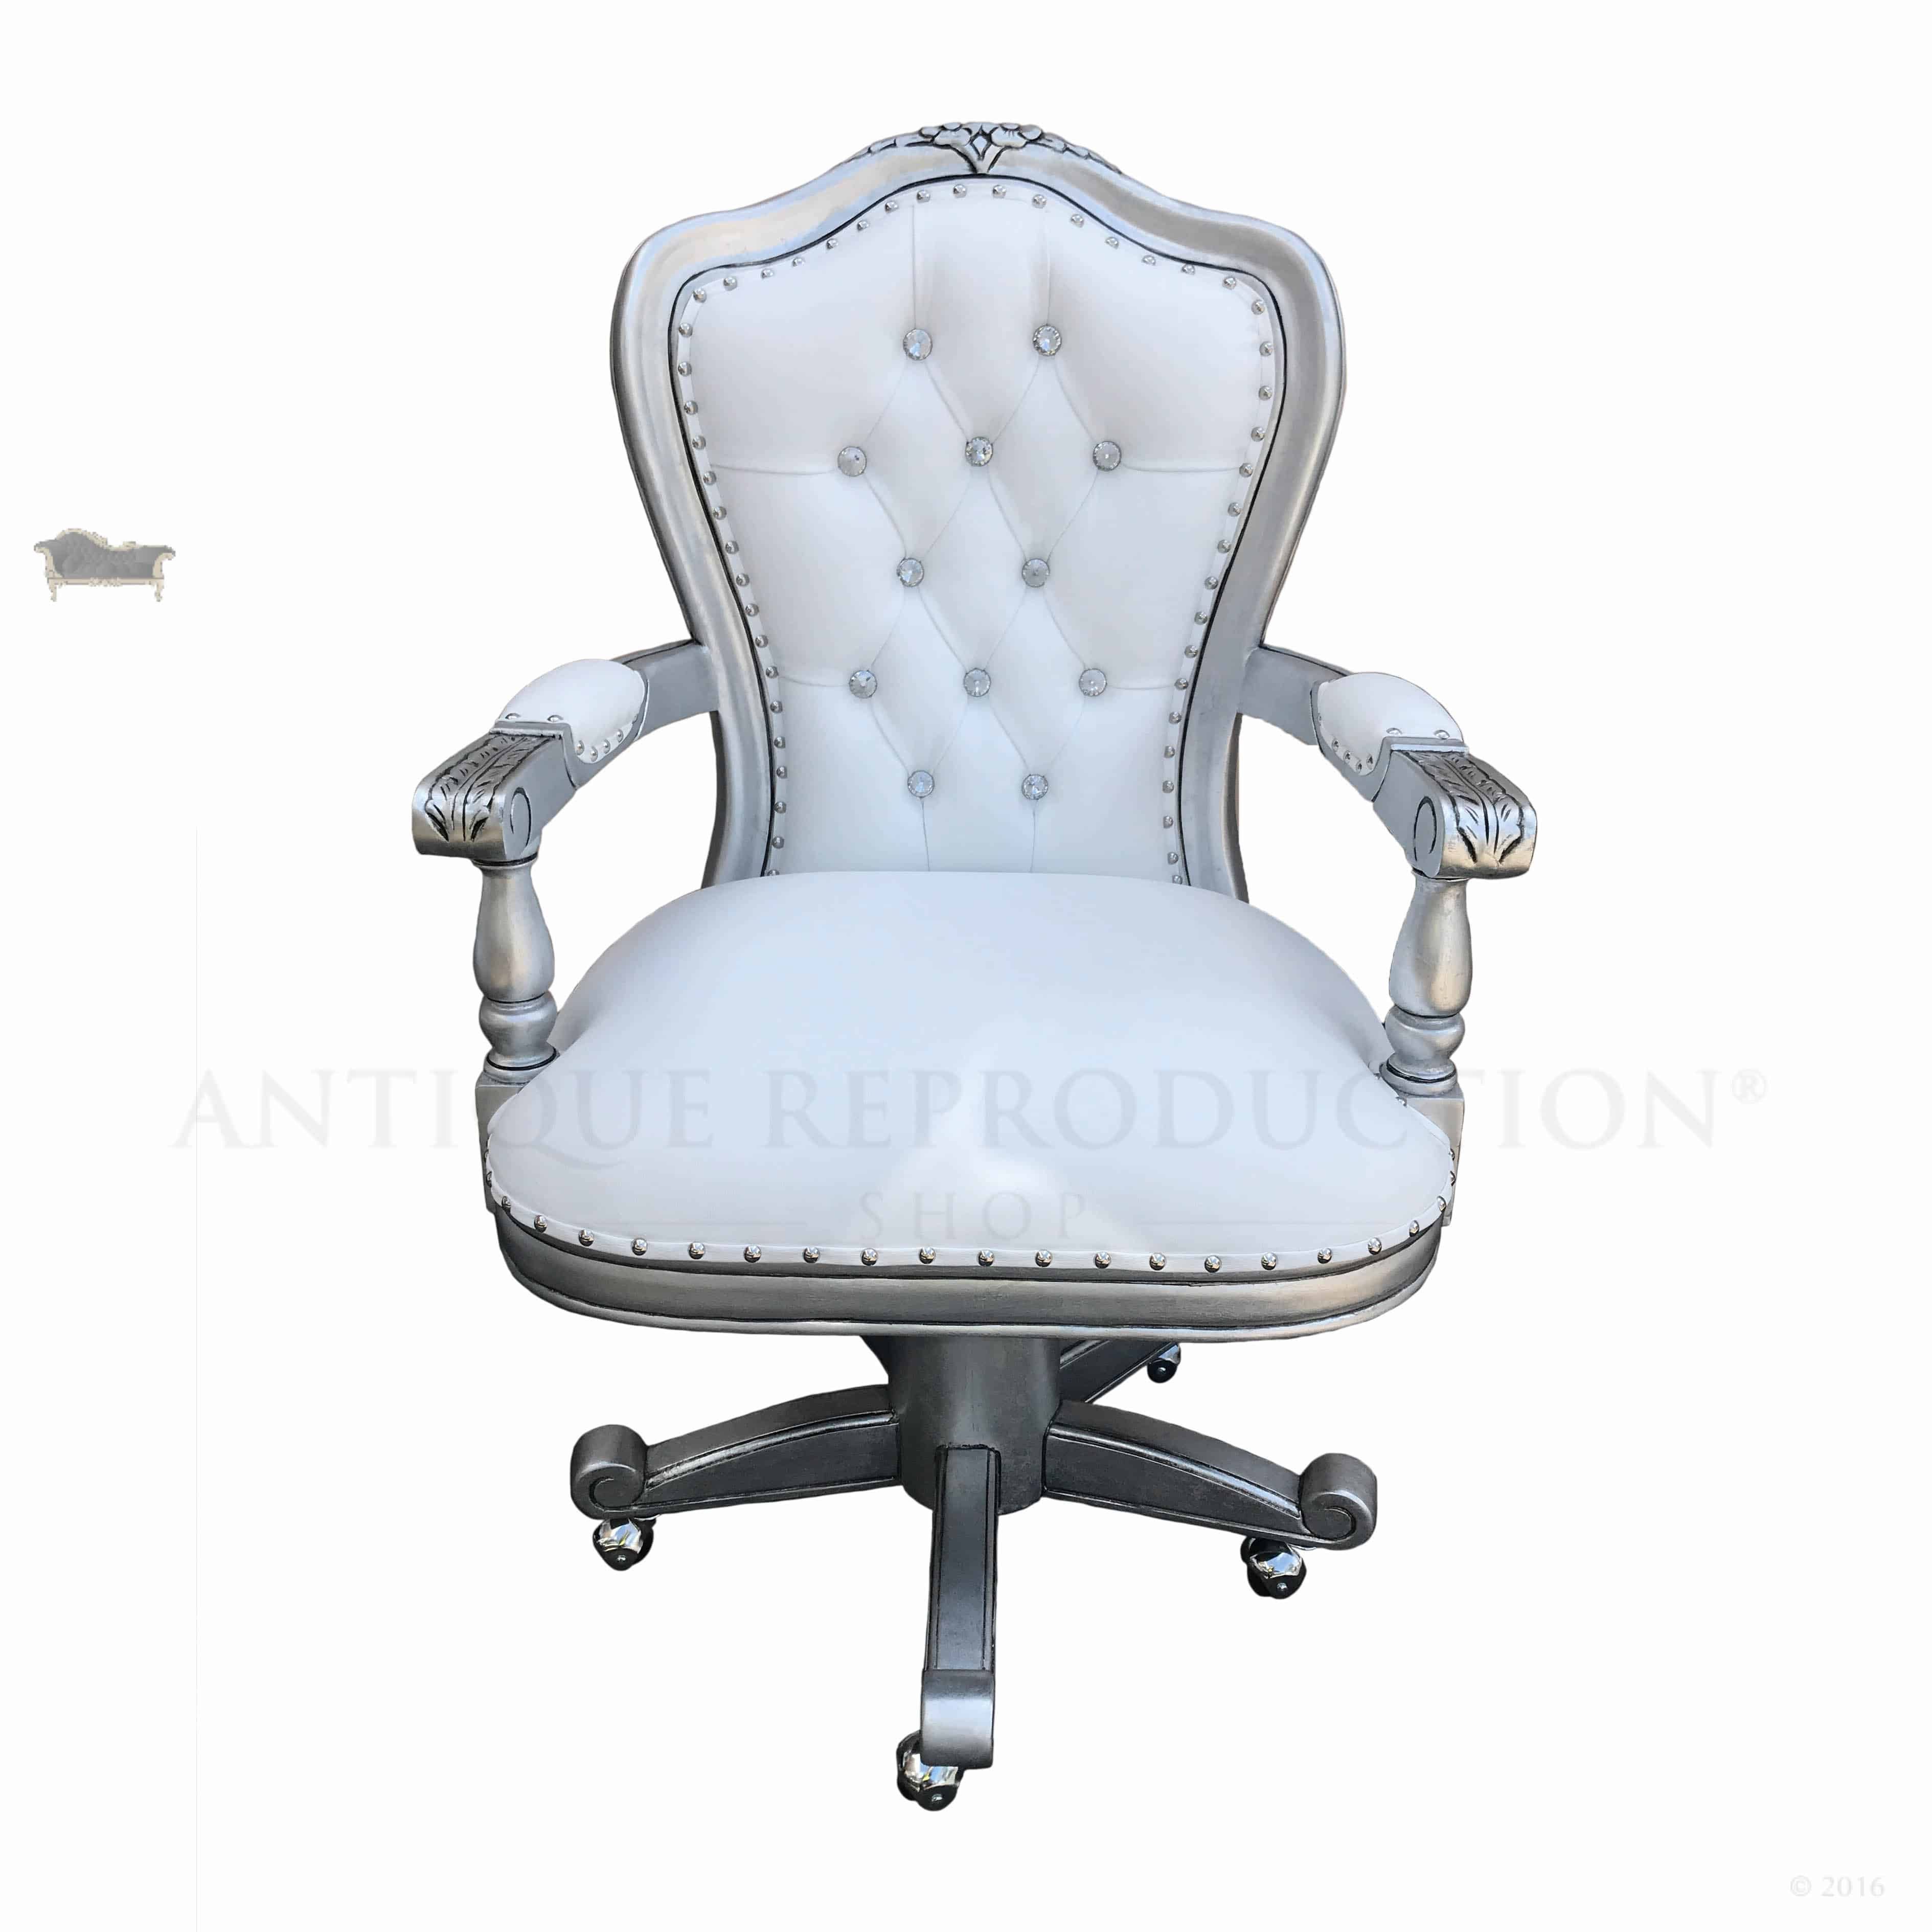 Antique Silver Presidential Swivel Office Chair With White And Crystal Upholstery Antique Reproduction Shop